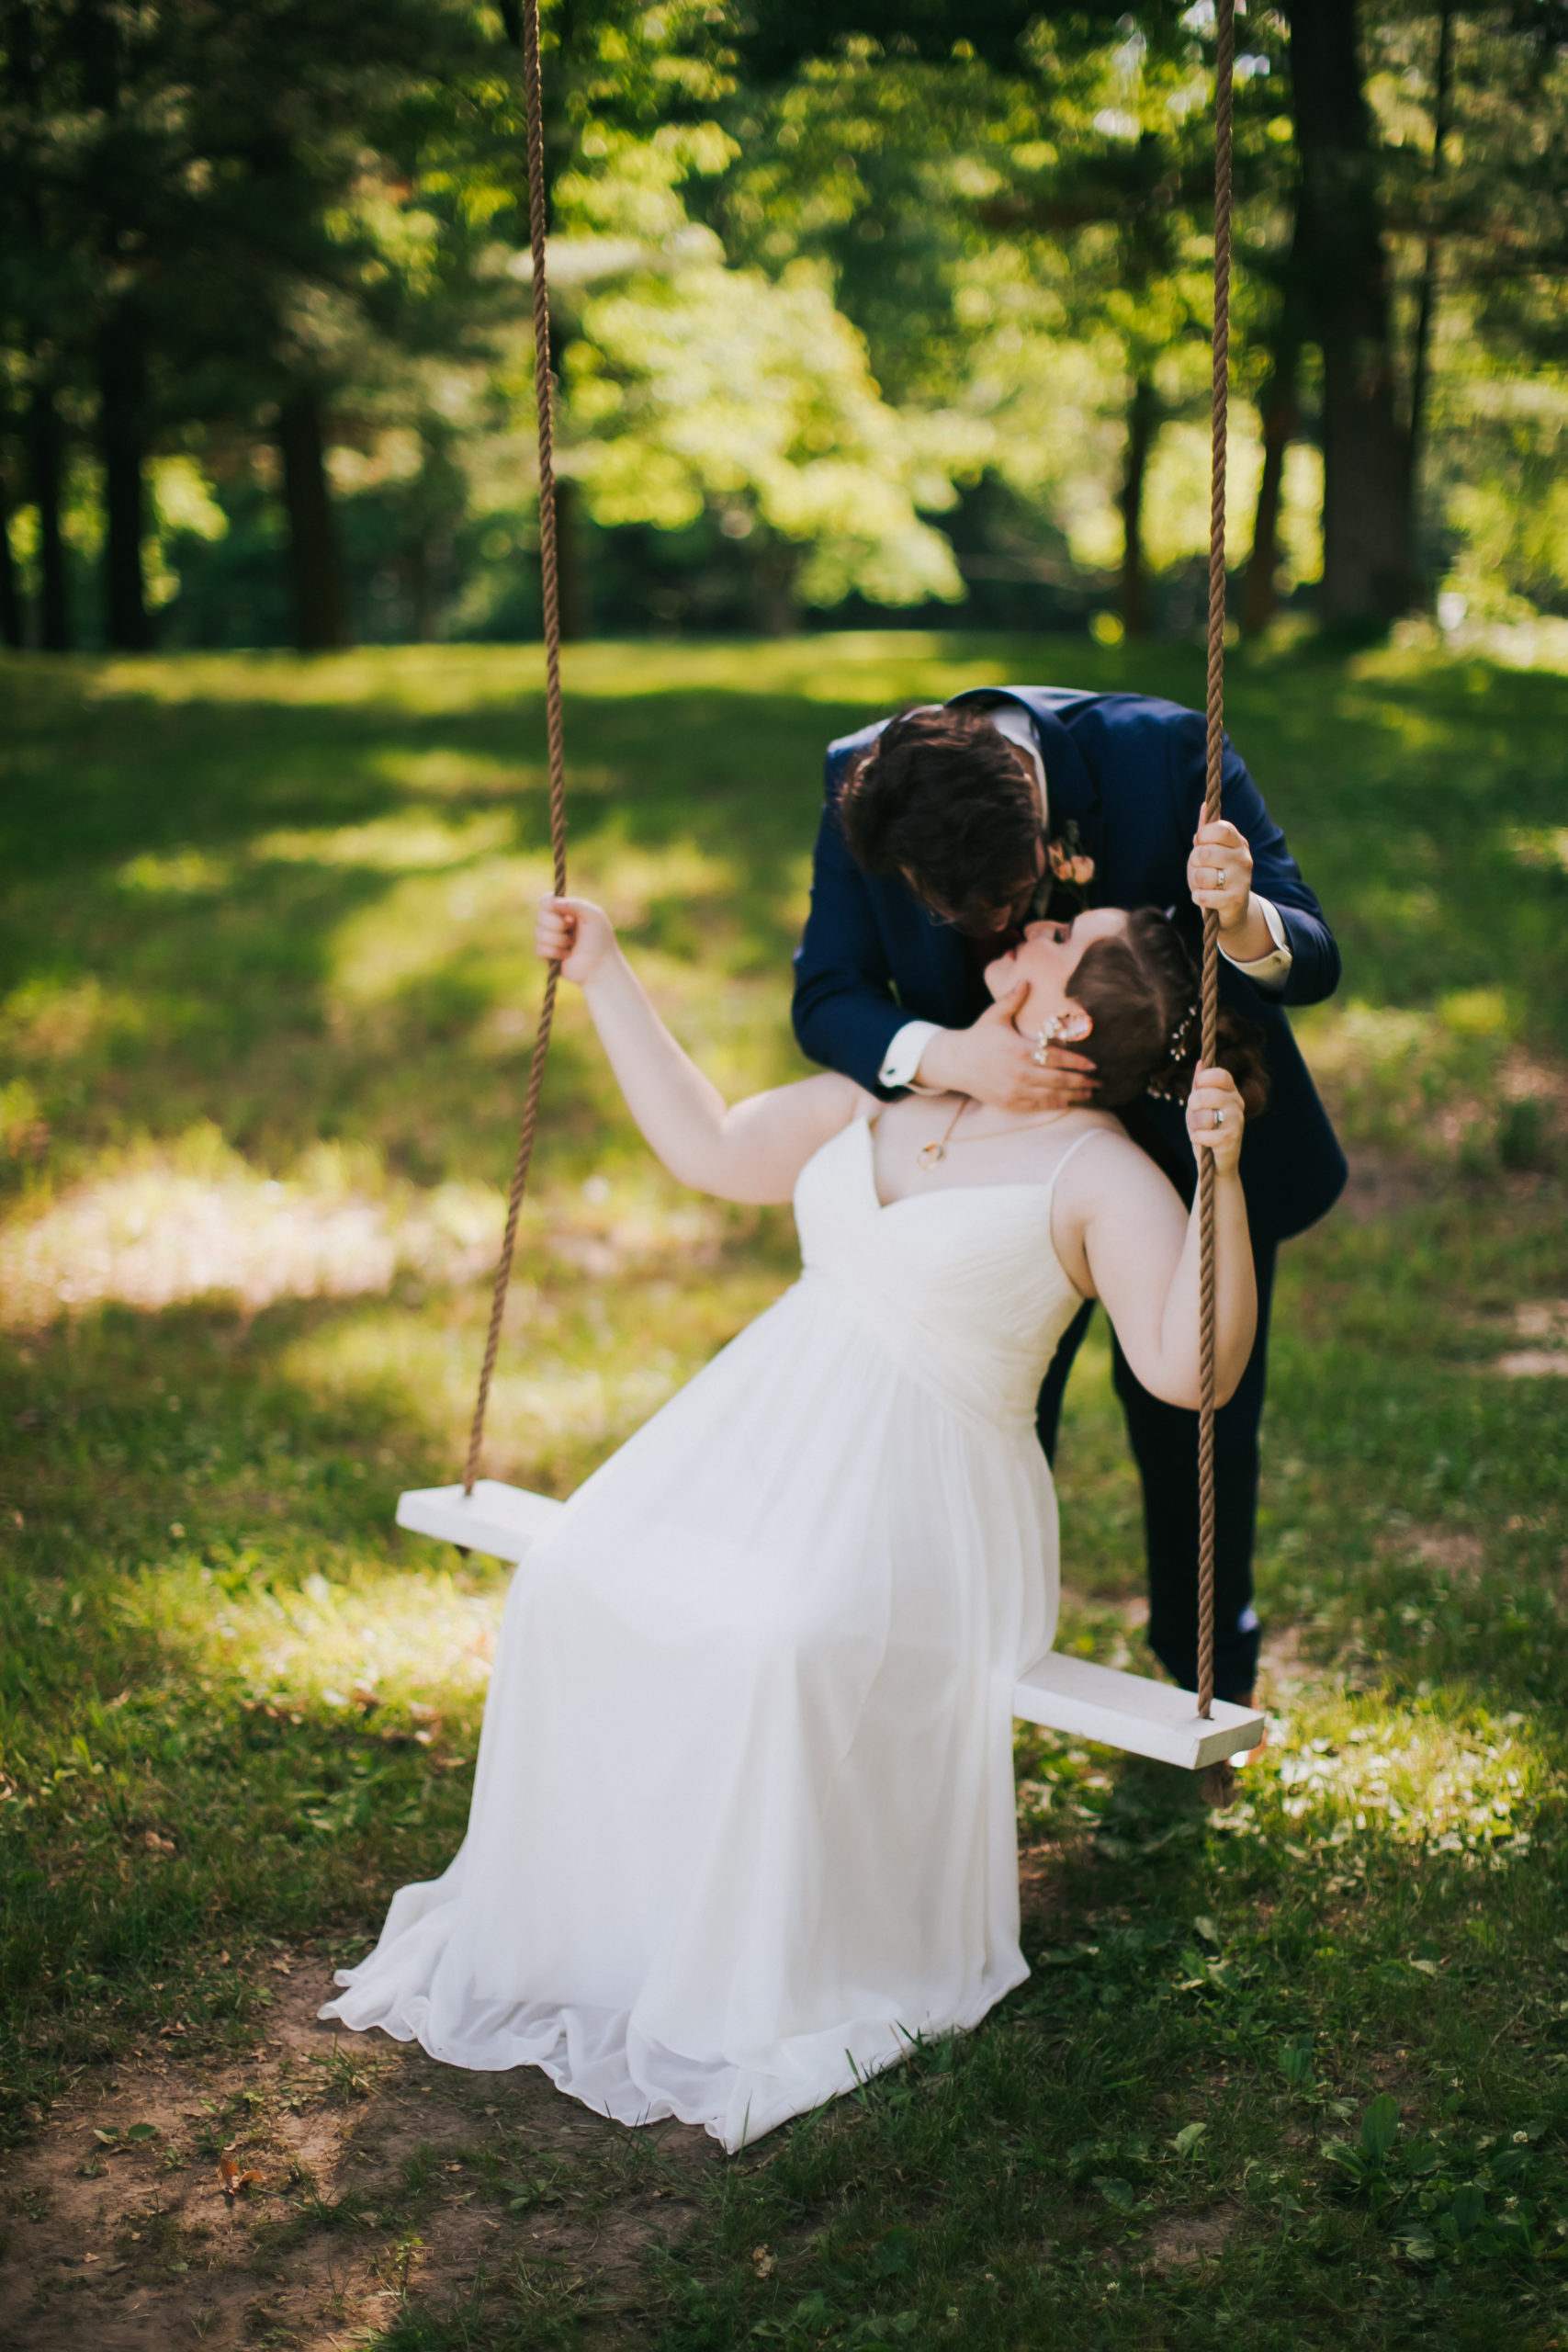 A man kisses his bride as she sits on a swing